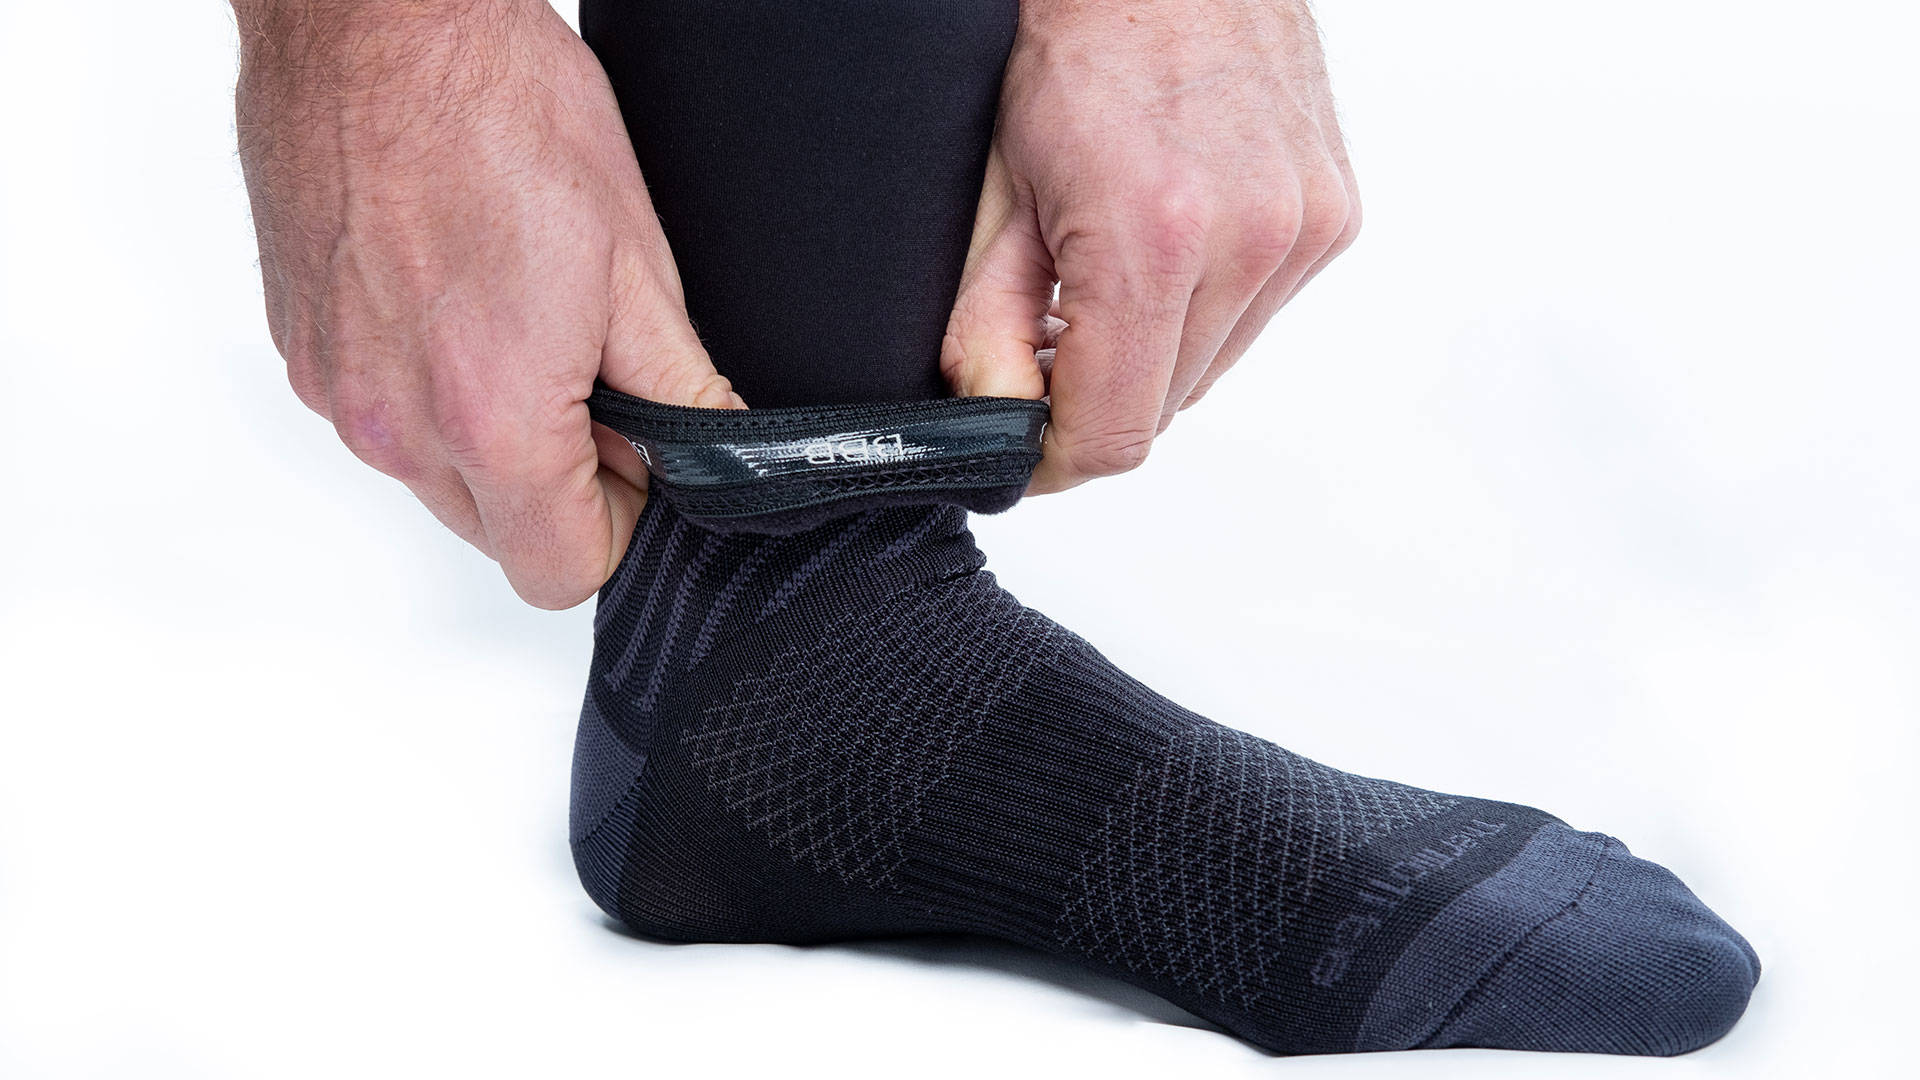 Silicone grip at the ankles